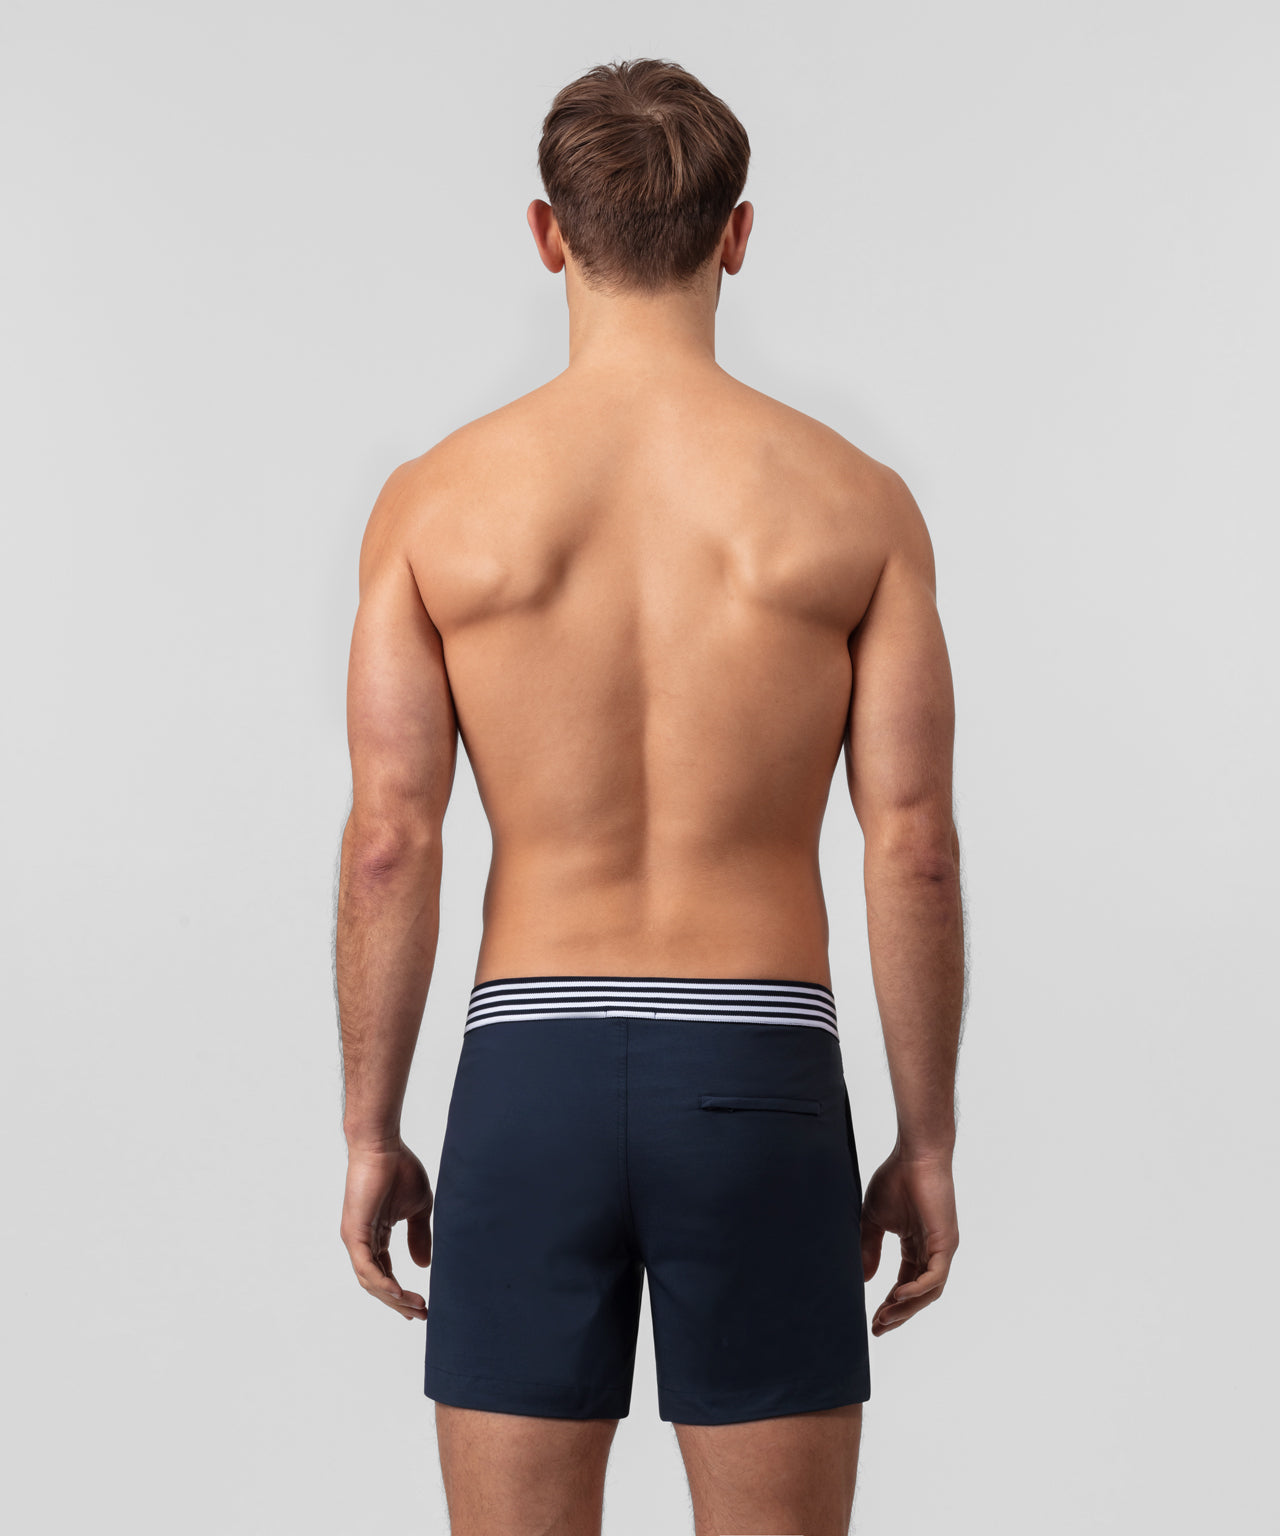 Urban Swim Shorts - navy